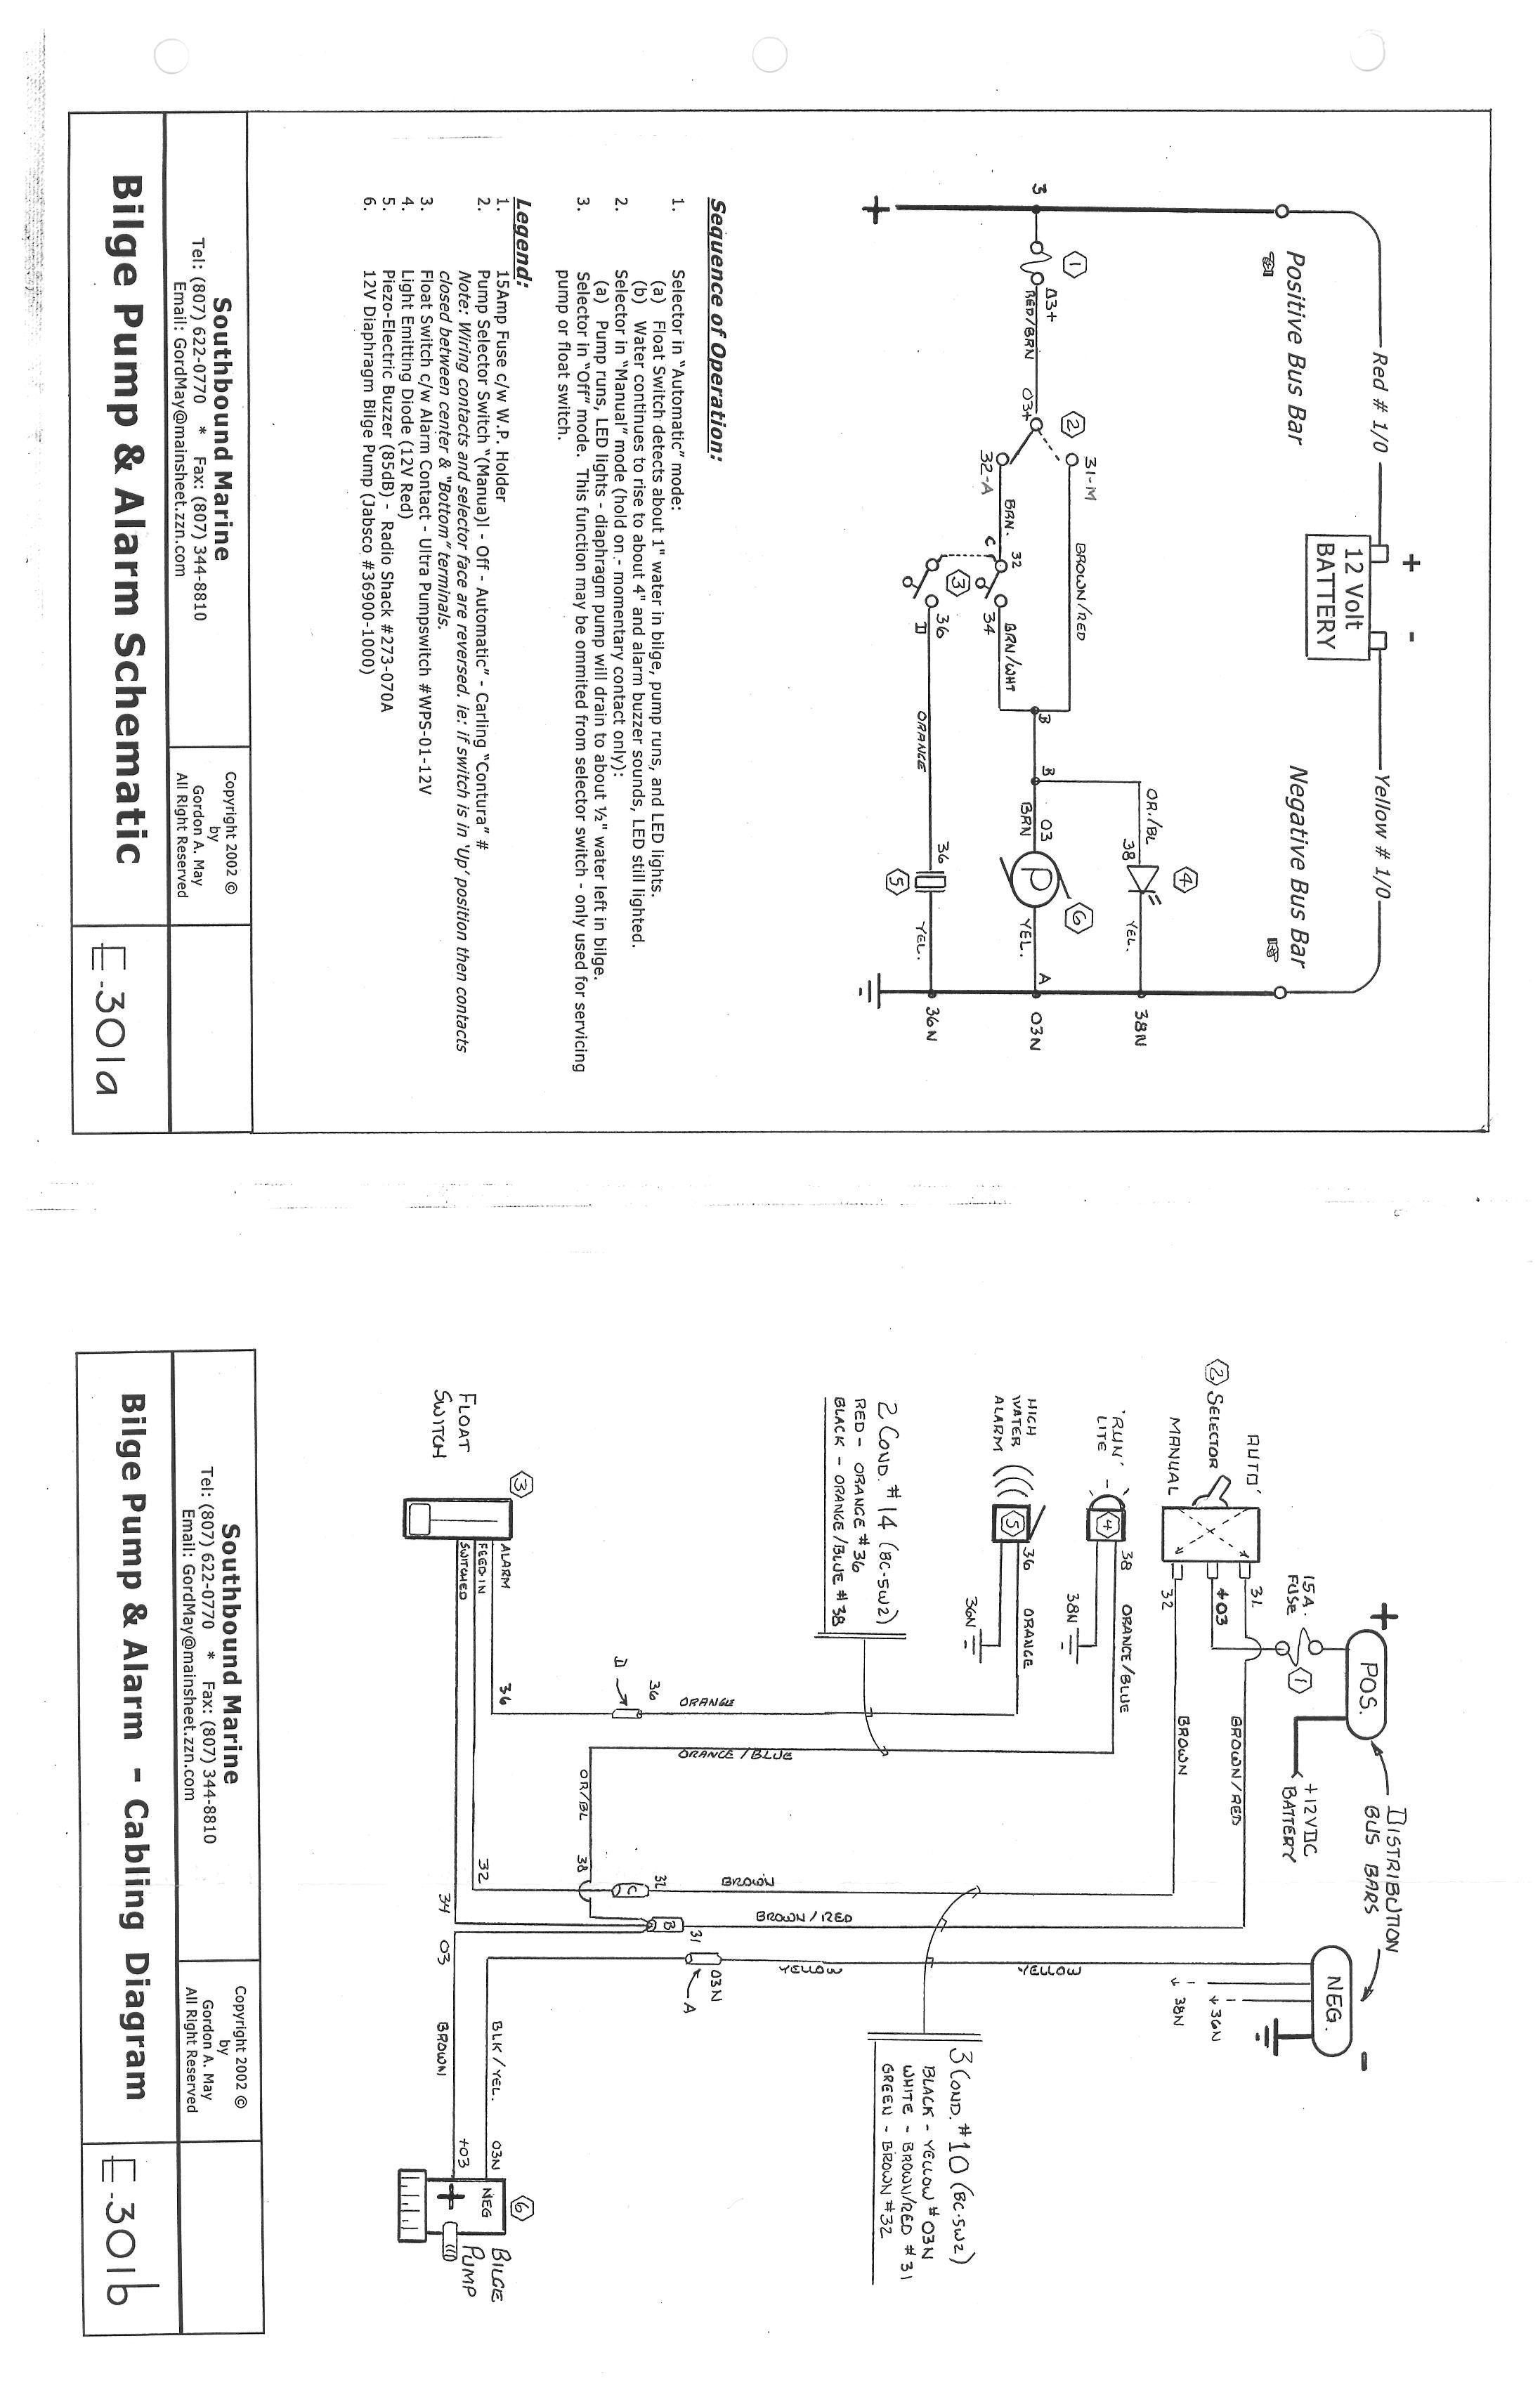 bilge pump float switch wiring diagram of 3 way schematic and alarm e 301a cruisers sailing